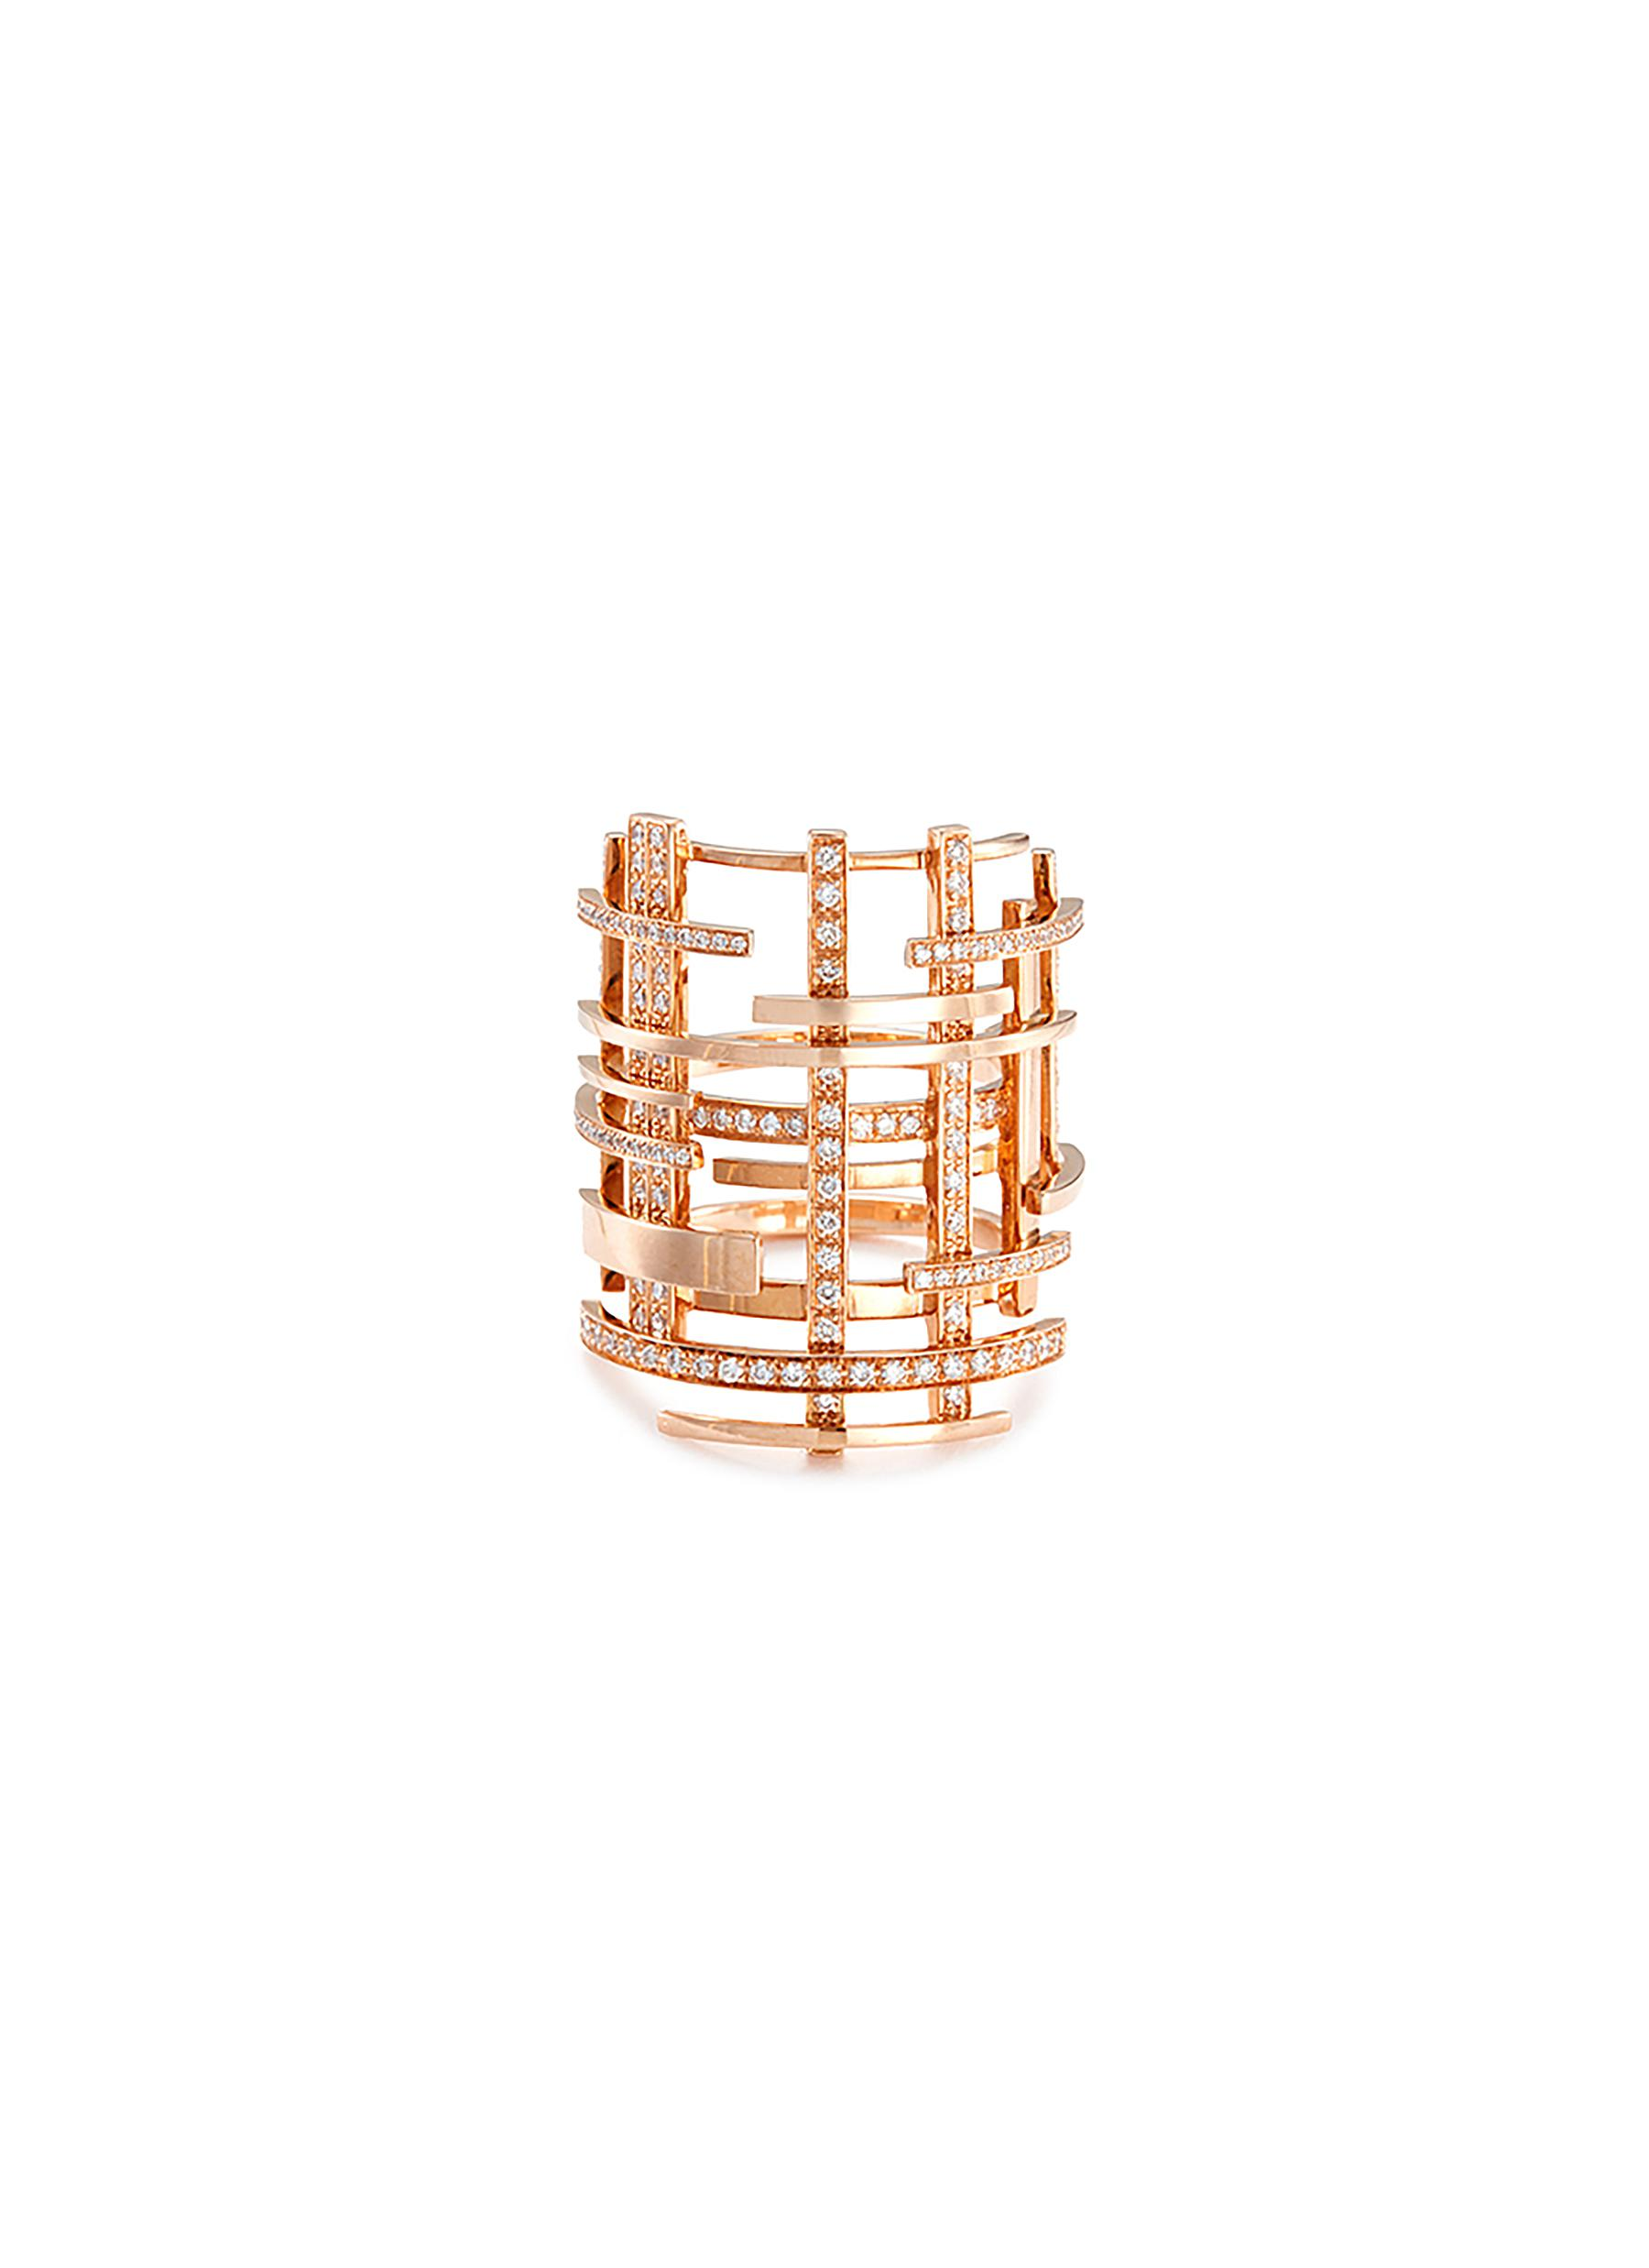 Diamond pavé 18k rose gold openwork lattice ring by Dauphin